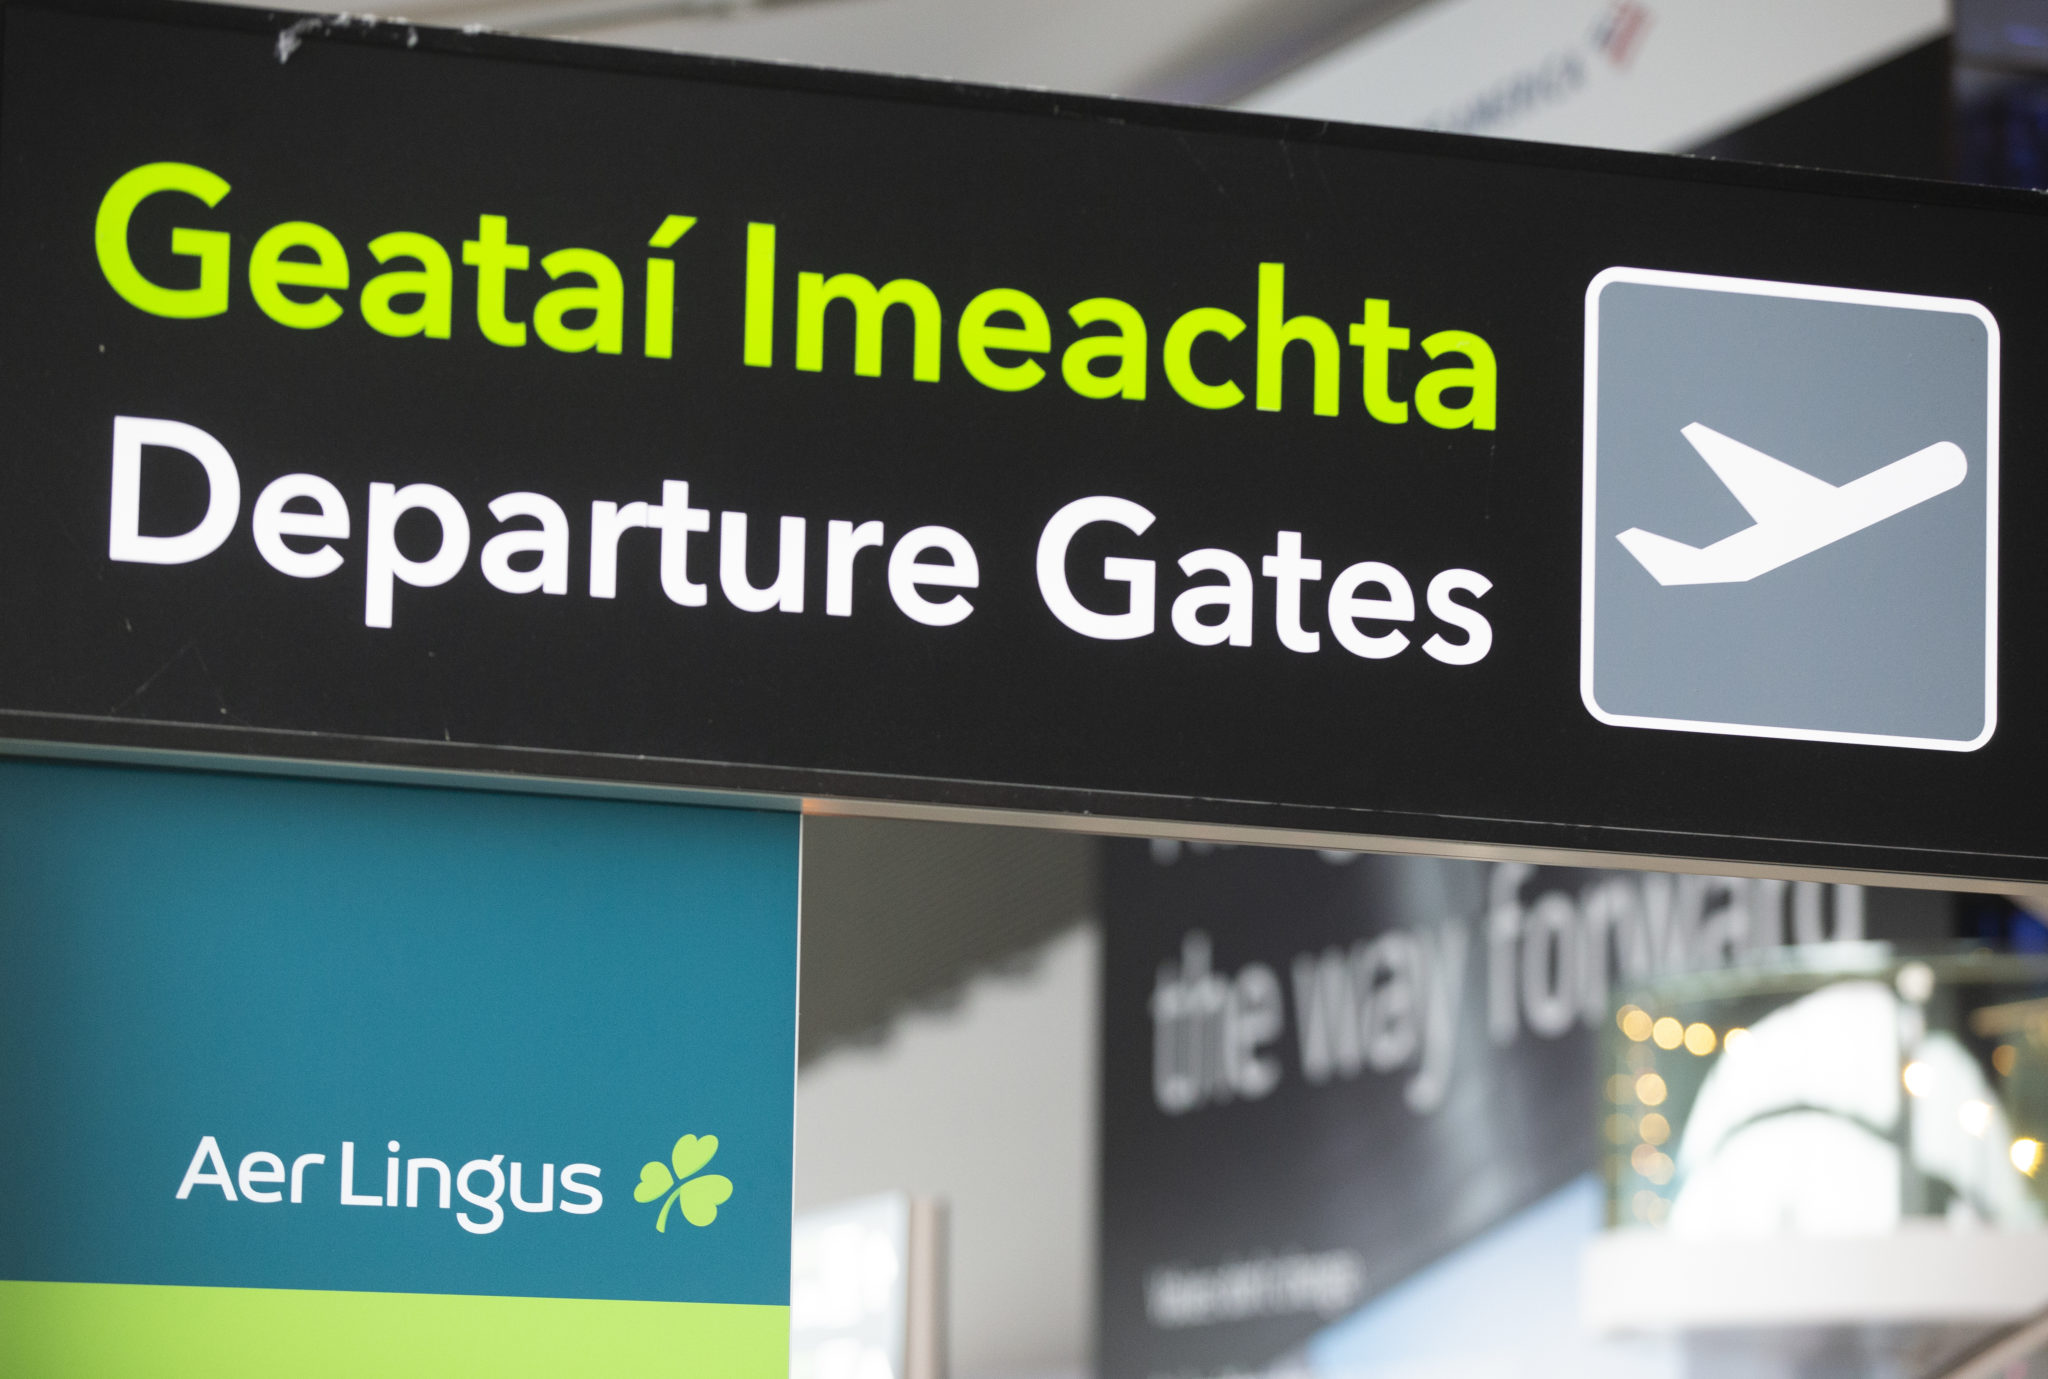 Departure Gates sign at Dublin Airport